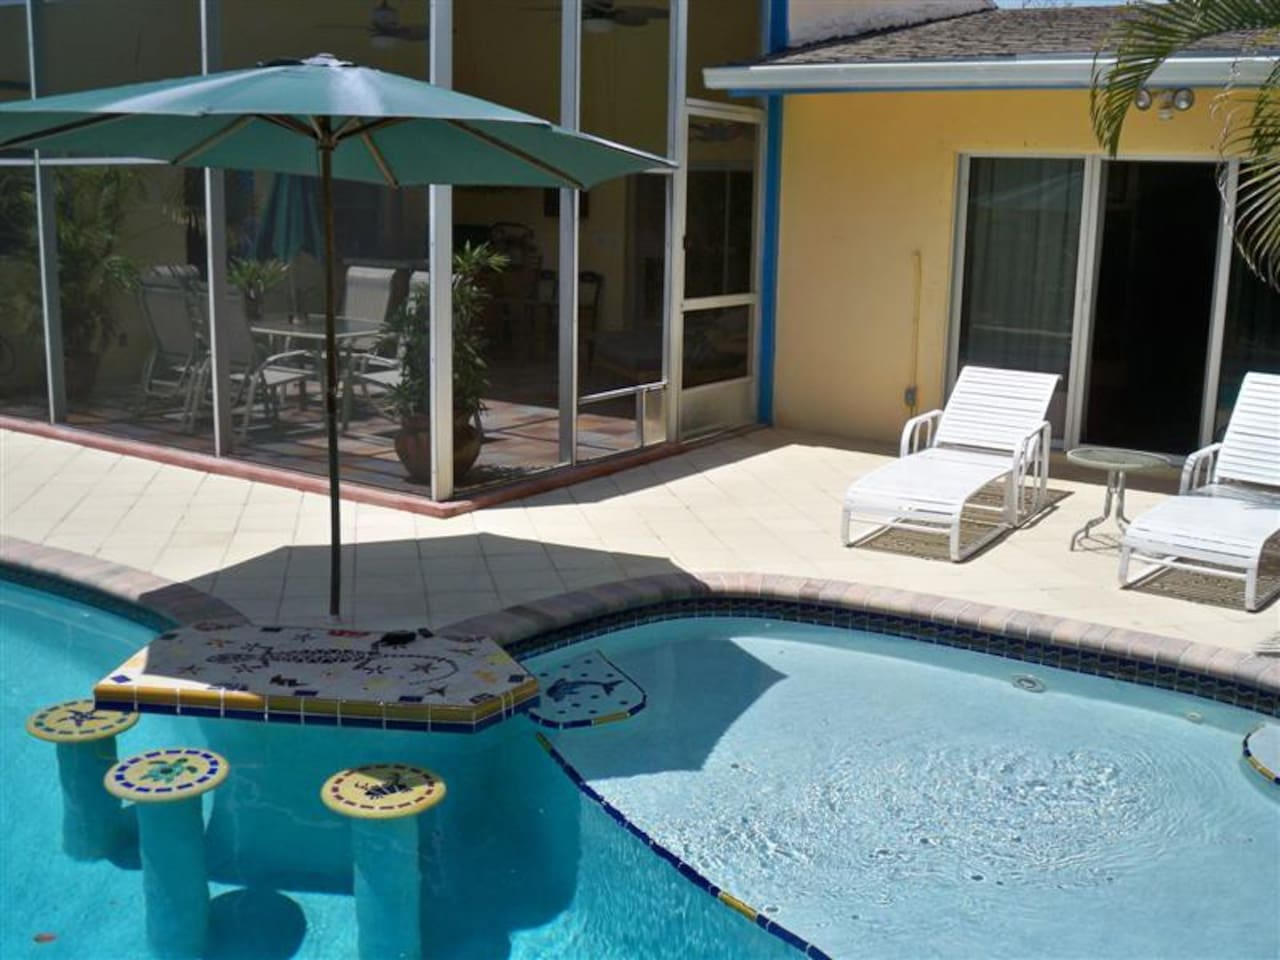 "Swim up bar stools and table, 15"" deep sun deck, holds two chaise lounges!"